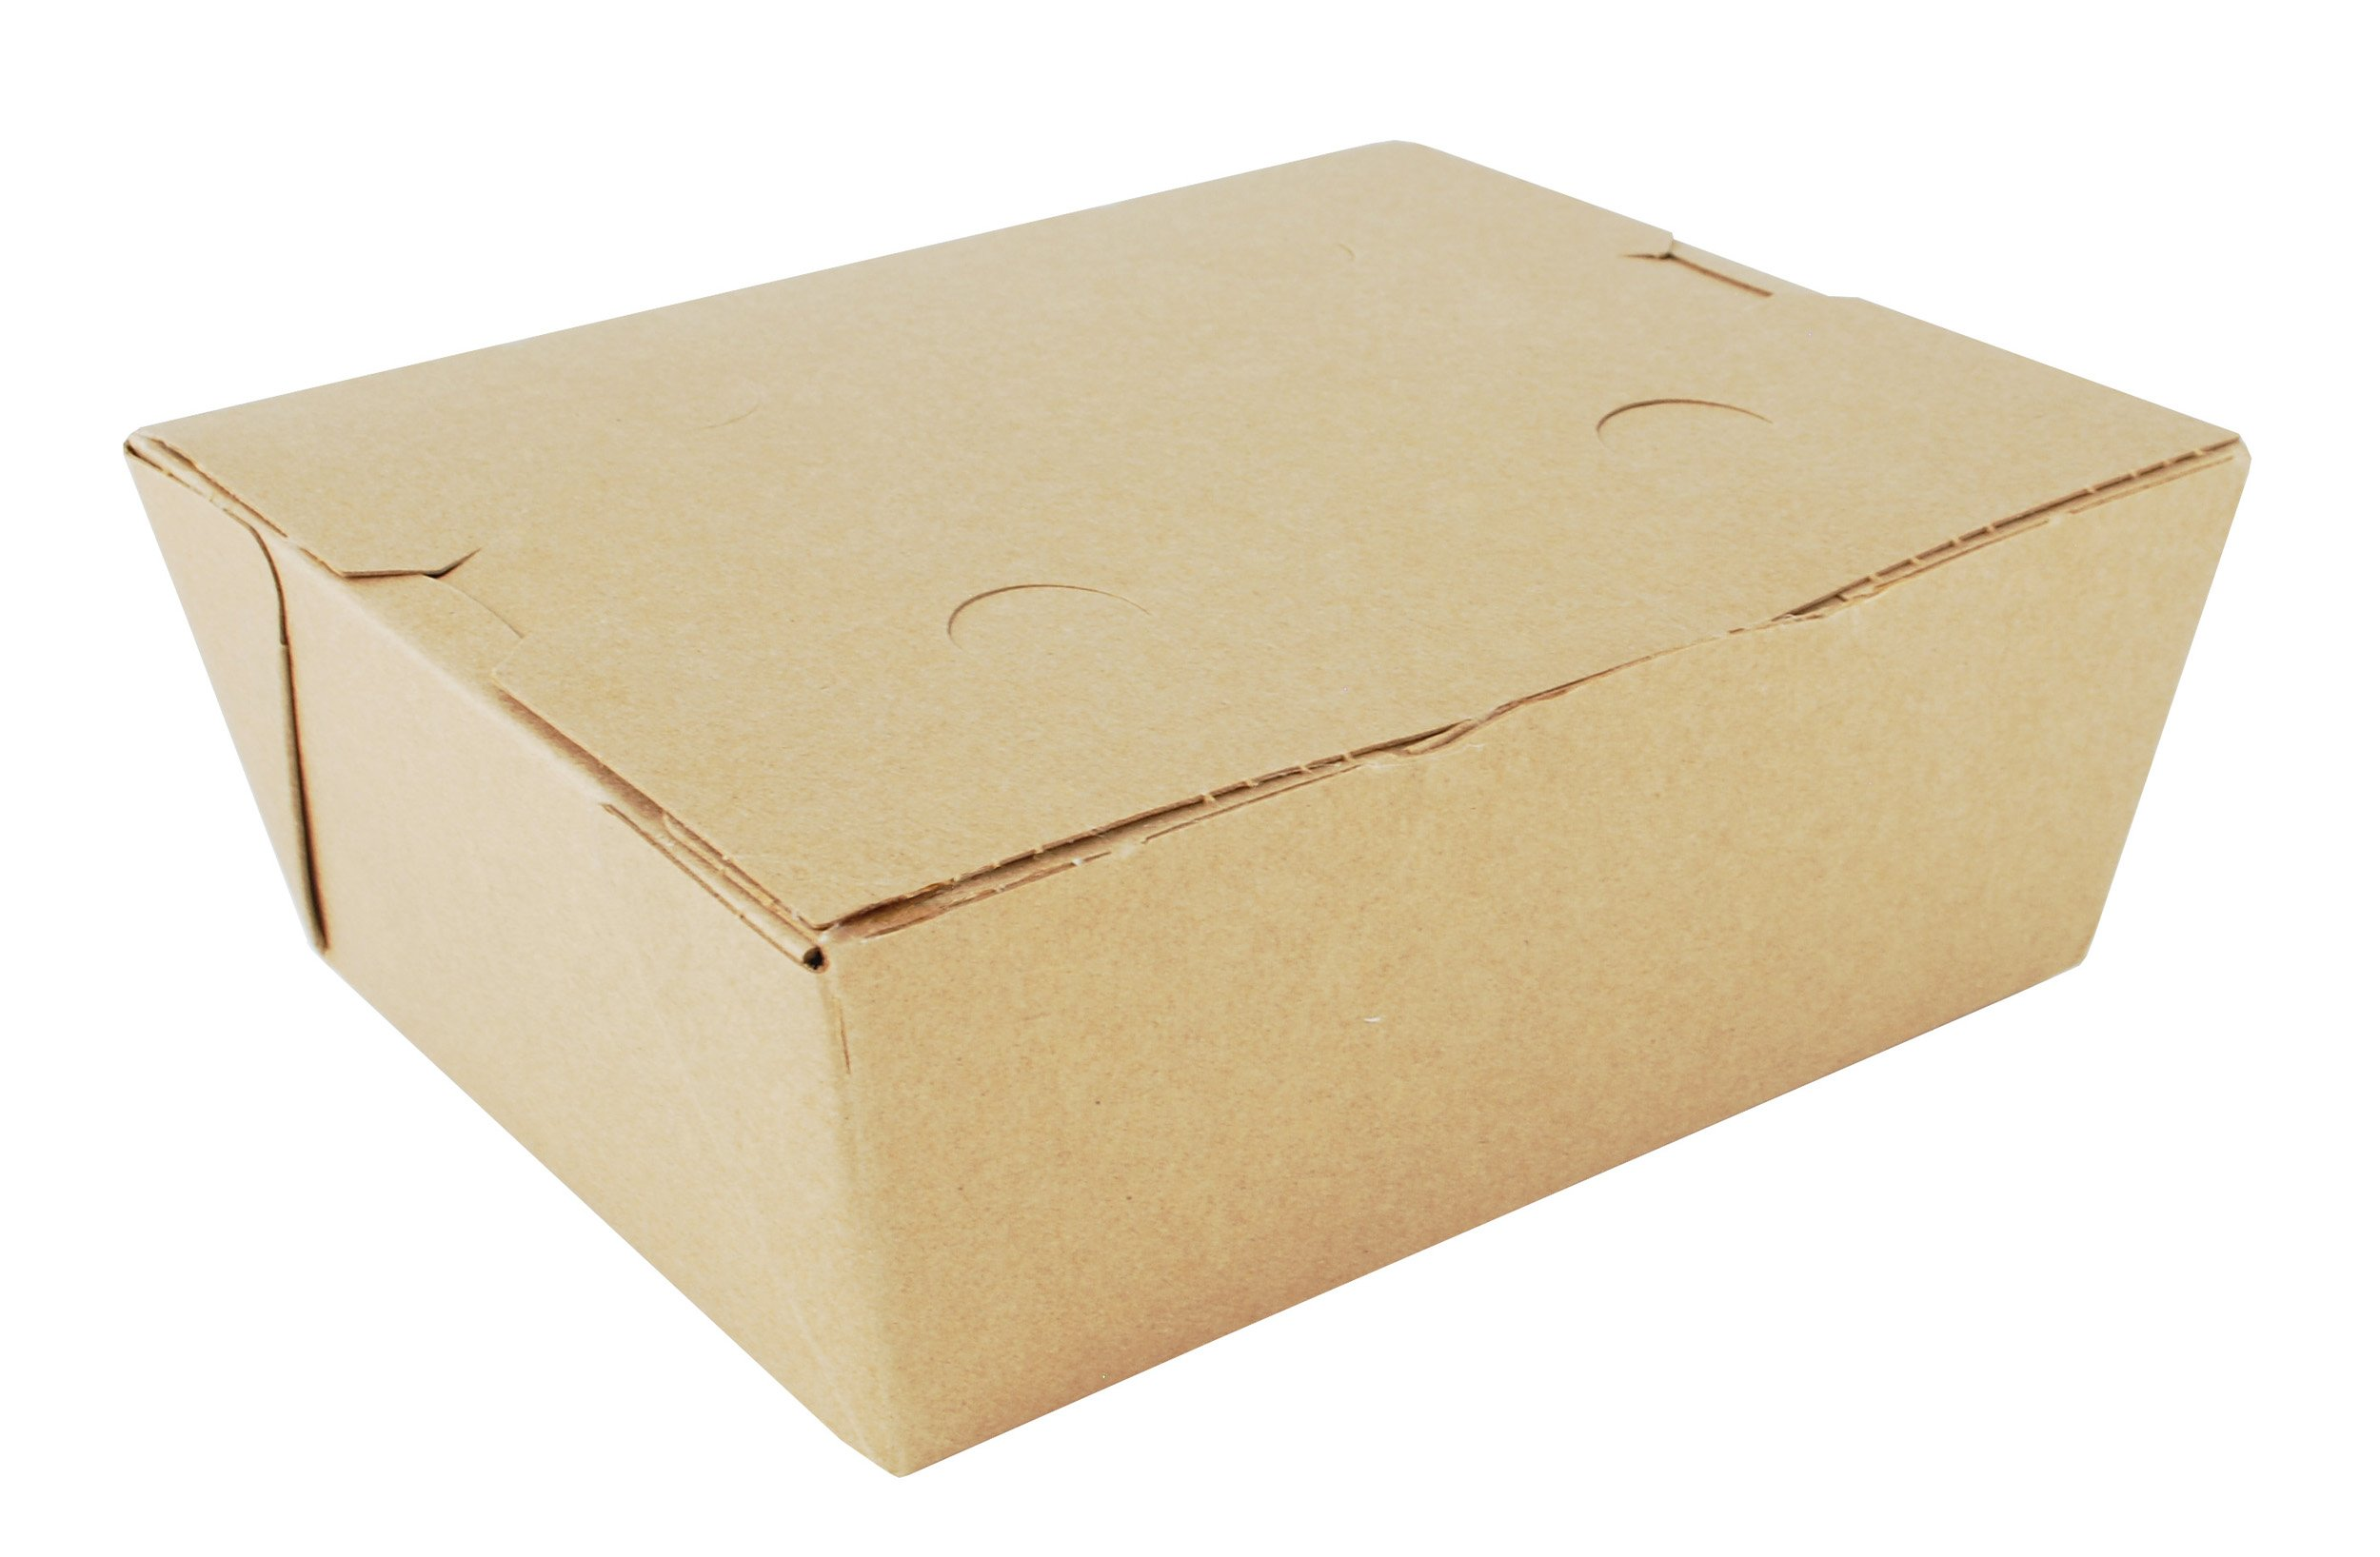 Southern Champion Tray 0738 #8 ChampPak Classic Take-Out Container, Kraft Paperboard with Poly Coated Inside, 6'' L x 4-3/4'' W x 2-1/2'' H (Case of 300)